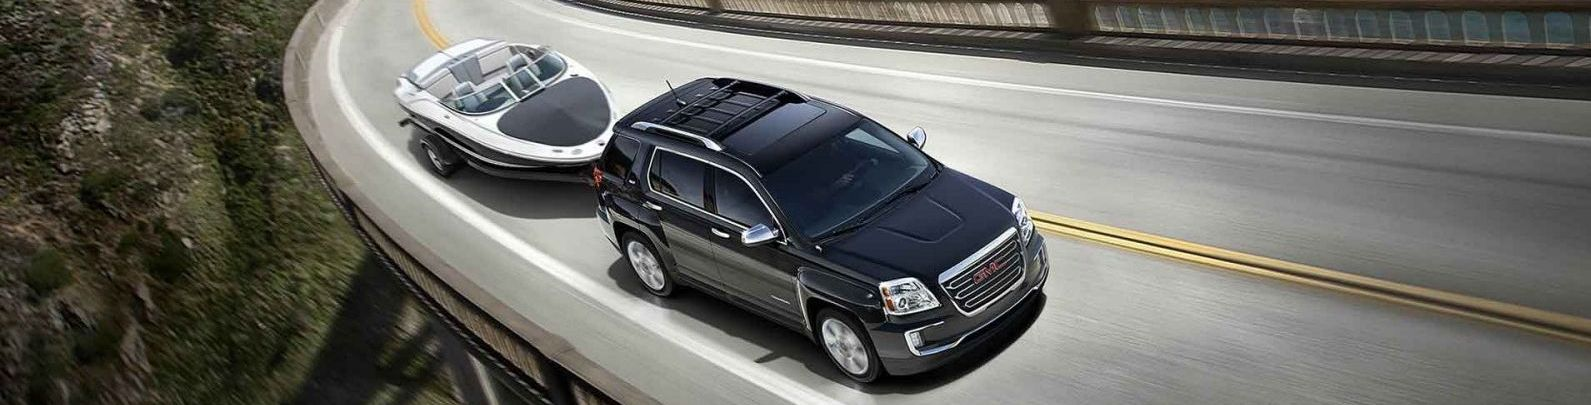 2017 GMC Terrain for Sale in St. Johns, MI